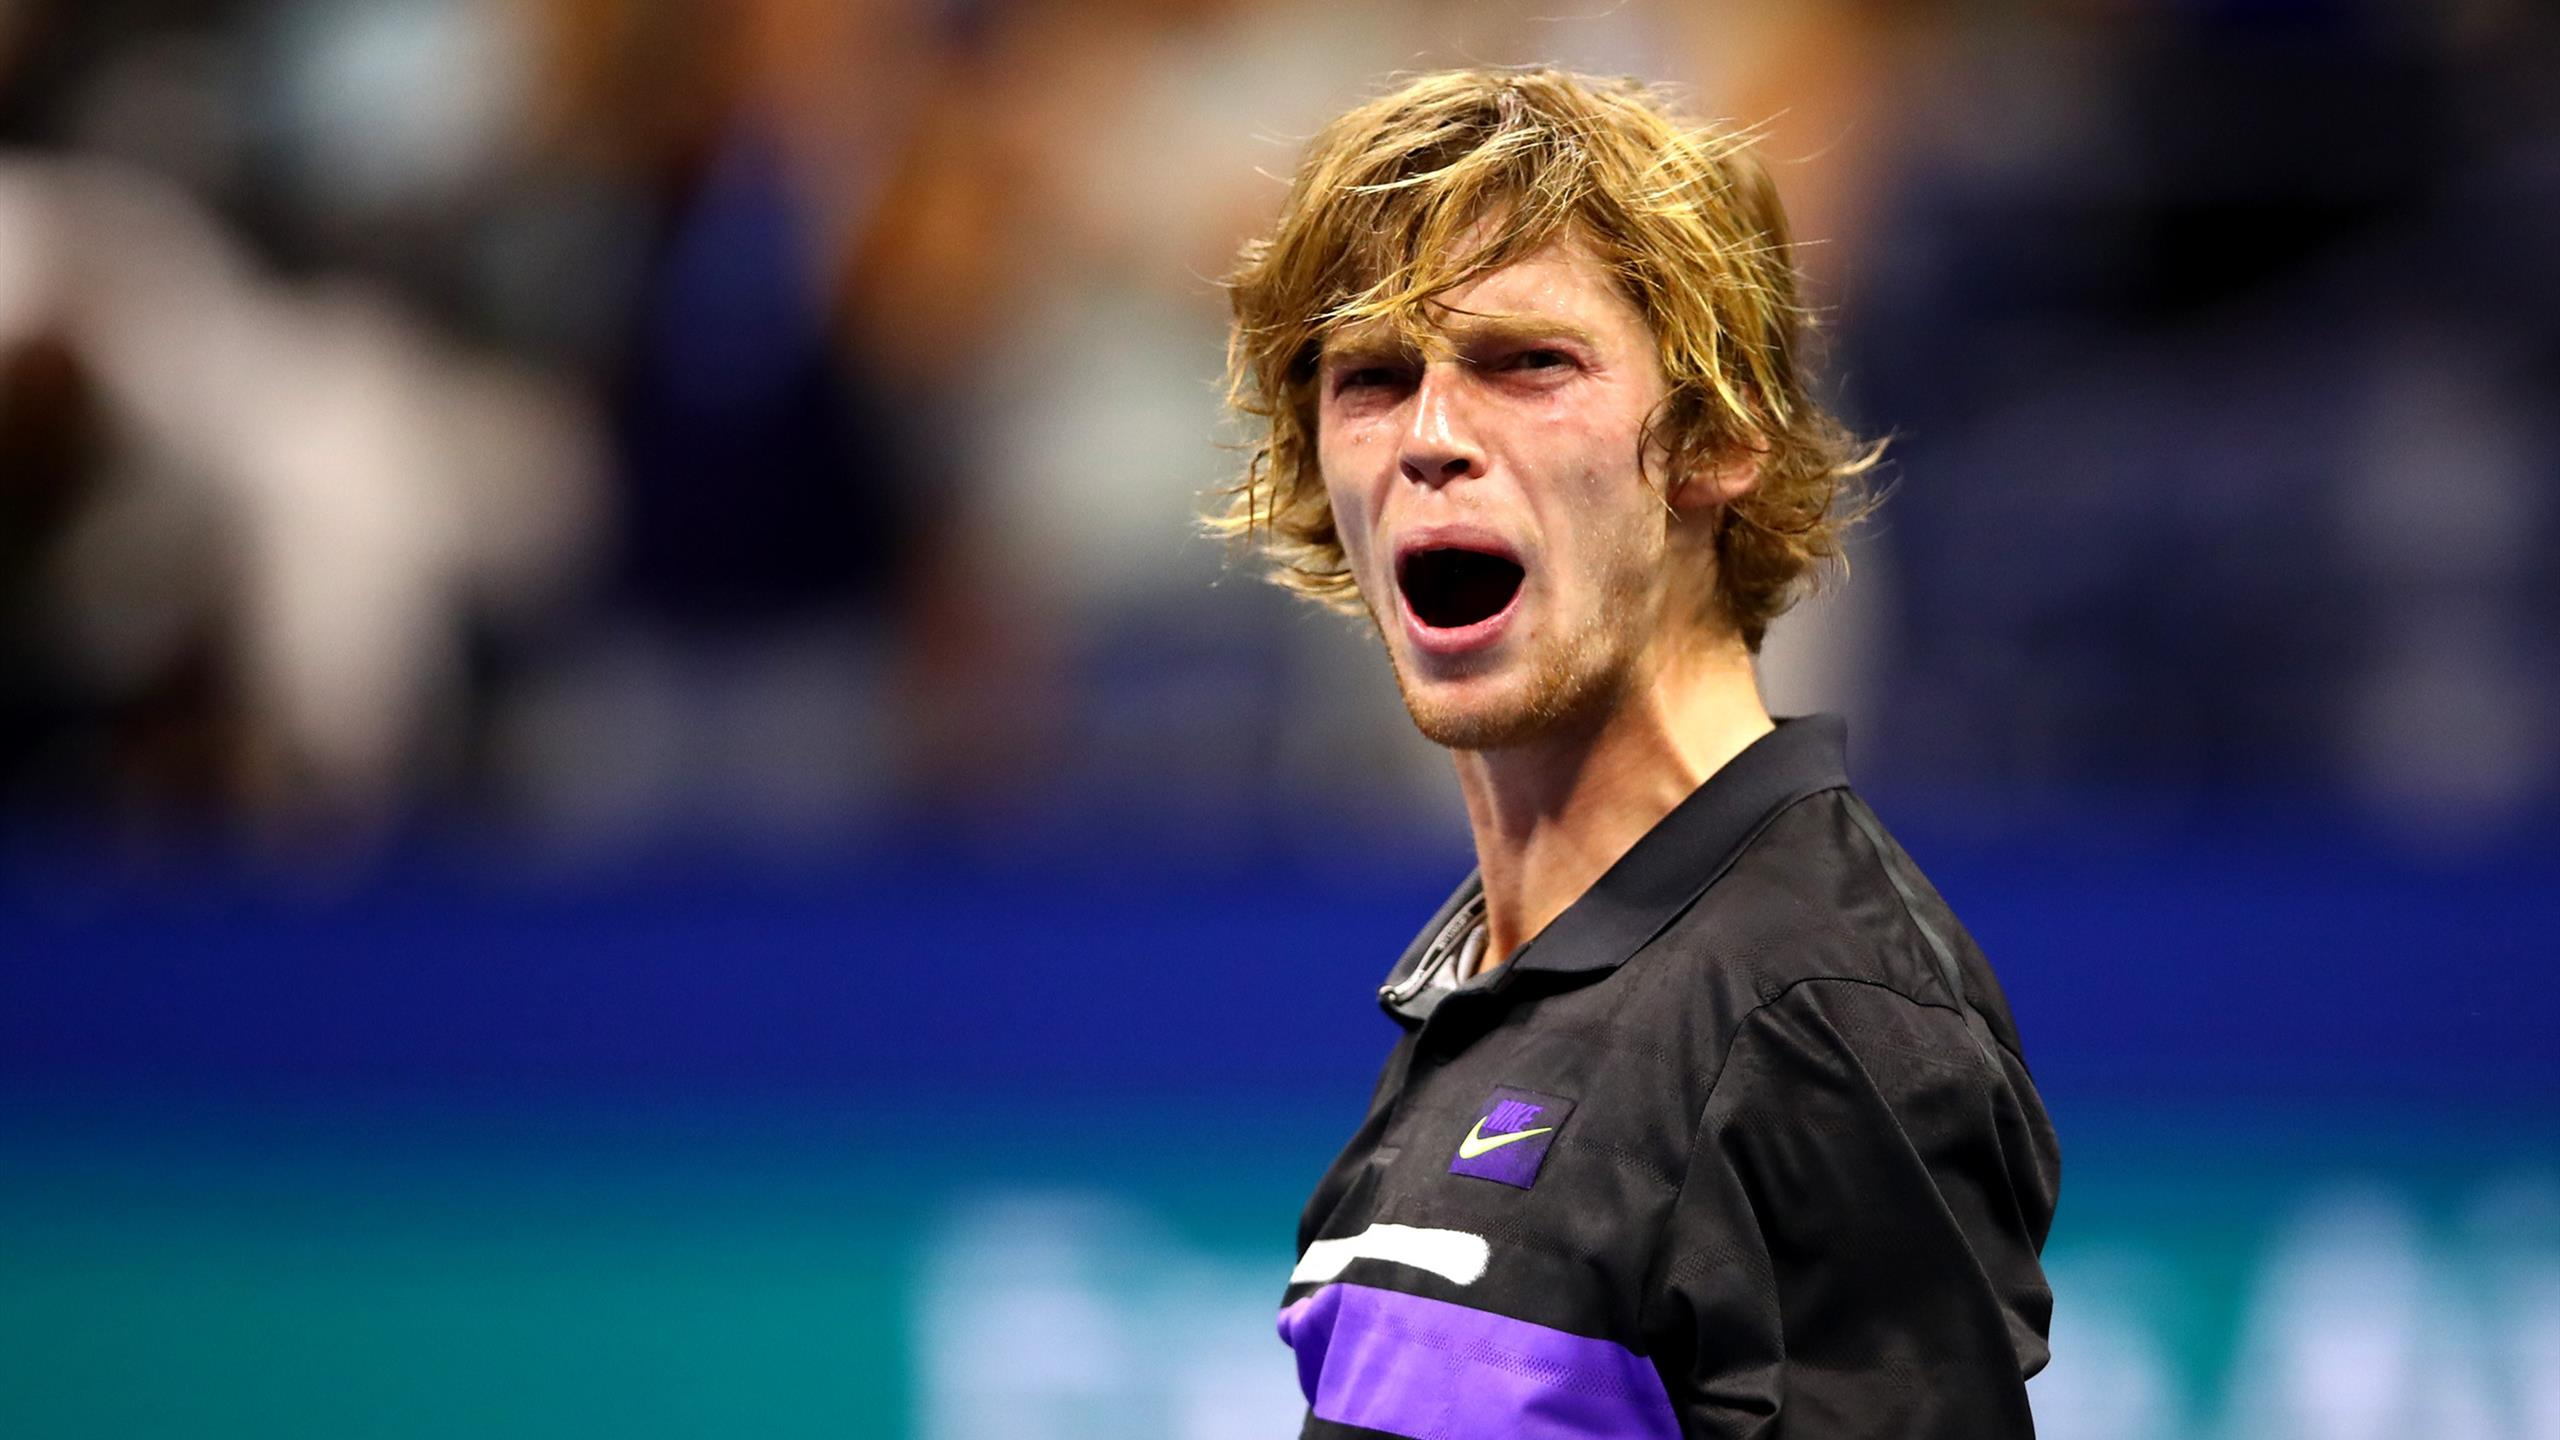 Андрей рублев us open 2019 [PUNIQRANDLINE-(au-dating-names.txt) 21